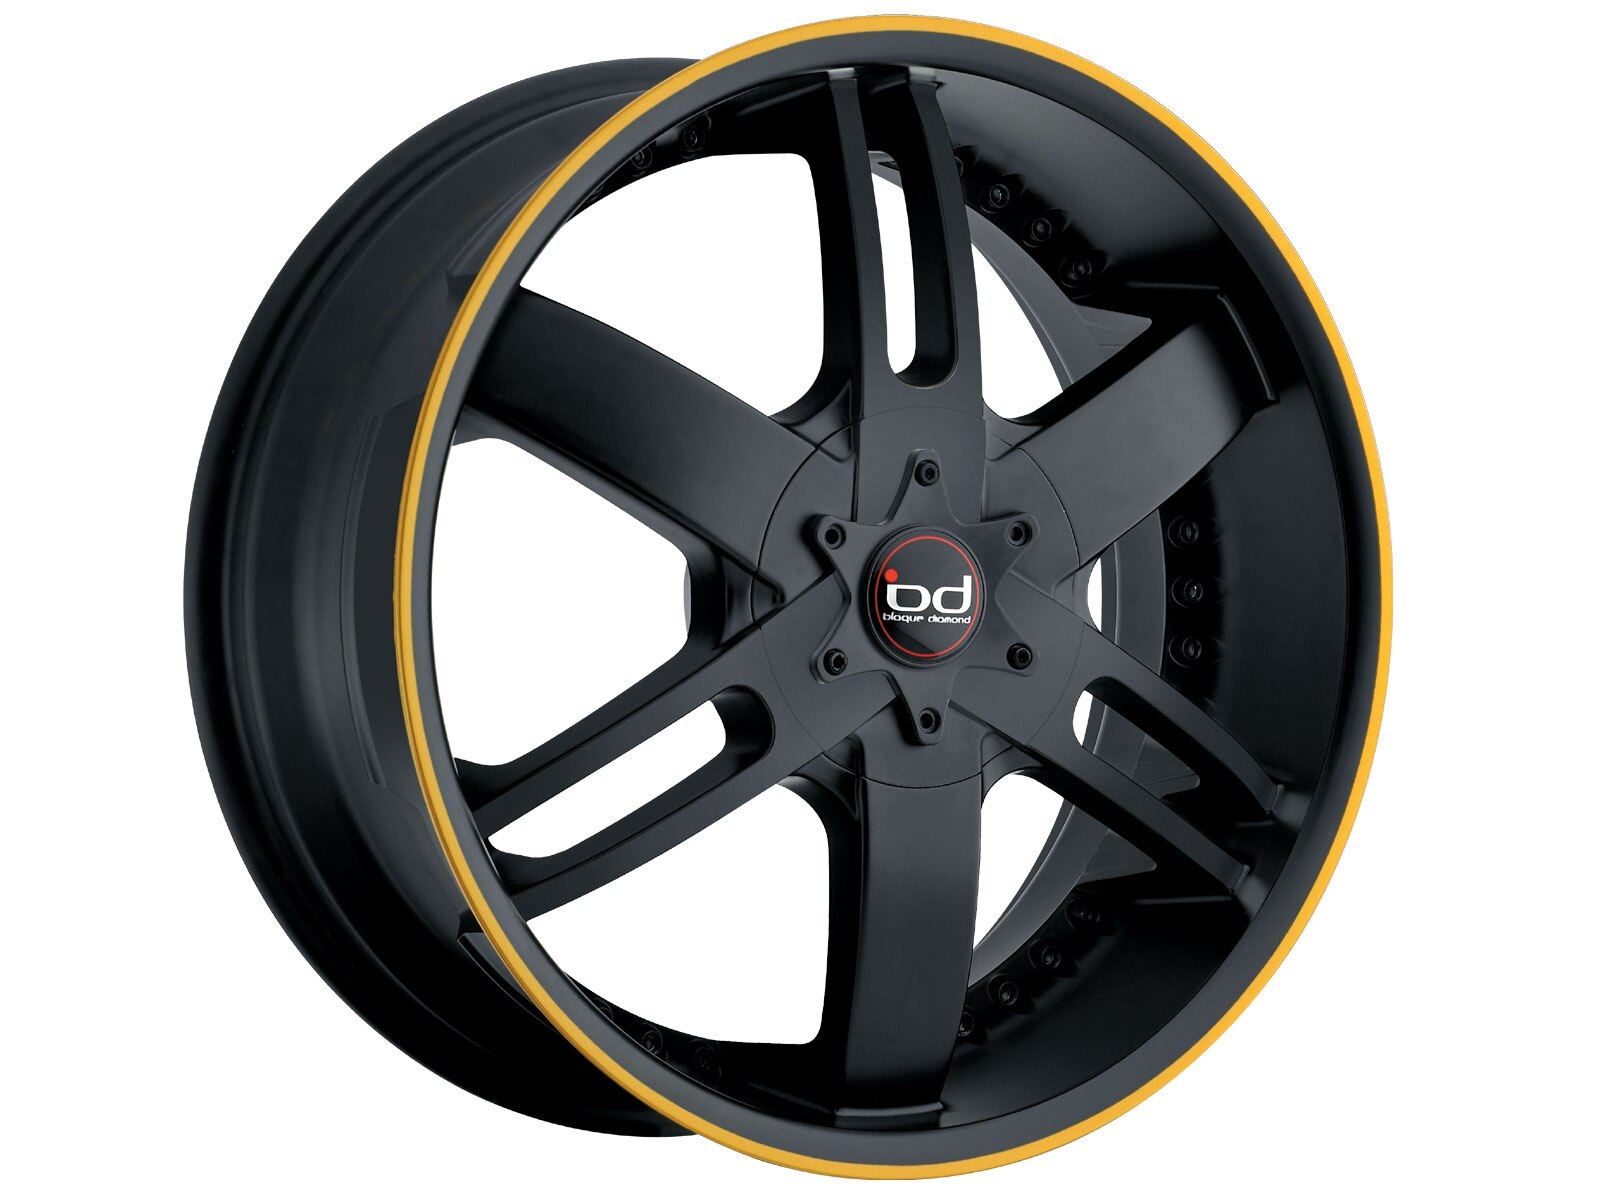 1005_lrmp_01_o-2010_wheel_tire_buying_guide-black_diamond_tight7